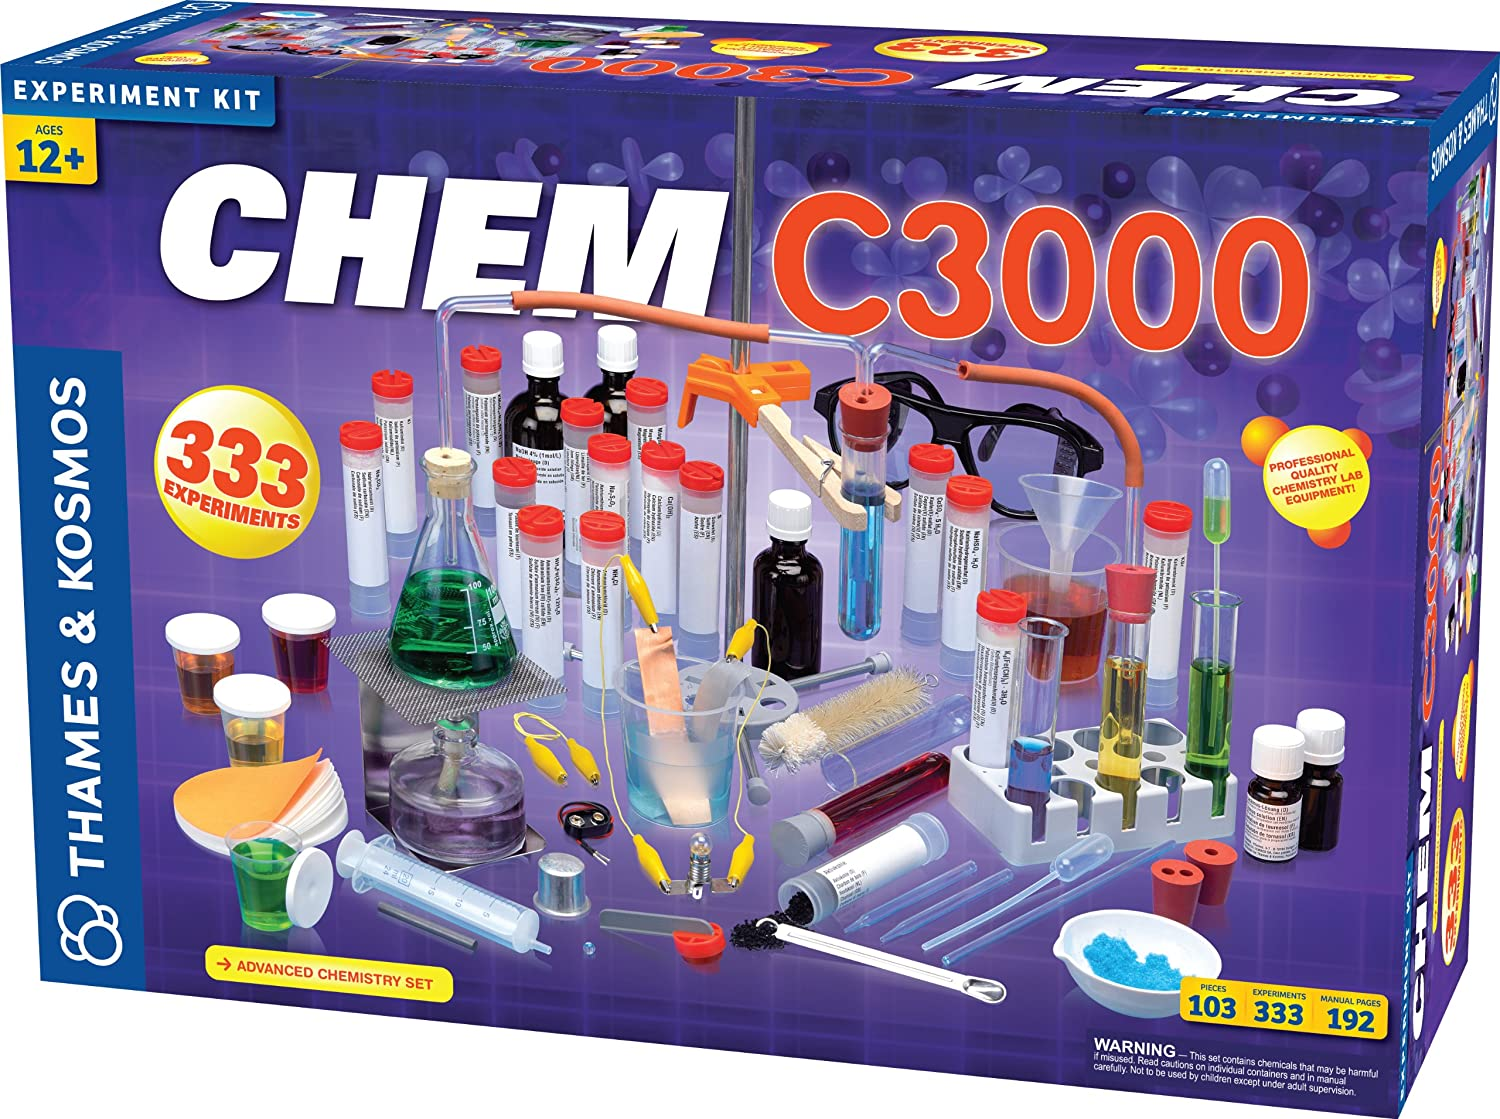 Top 13 Best Chemistry Set for Kids Reviews in 2020 1